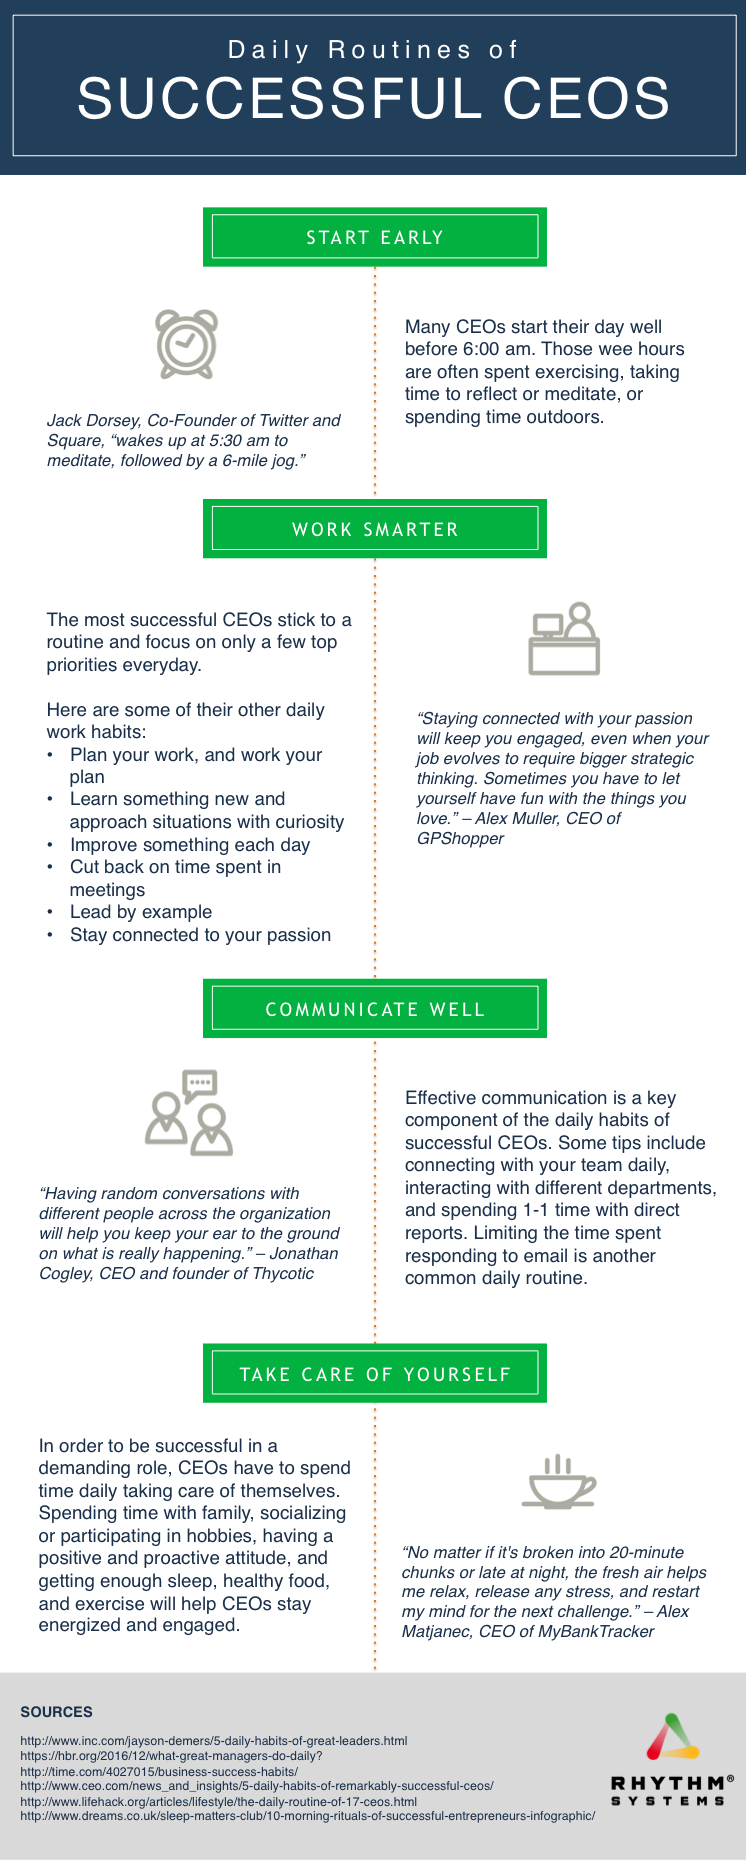 Daily Routines Of Successful Ceos Infographic Daily Routine